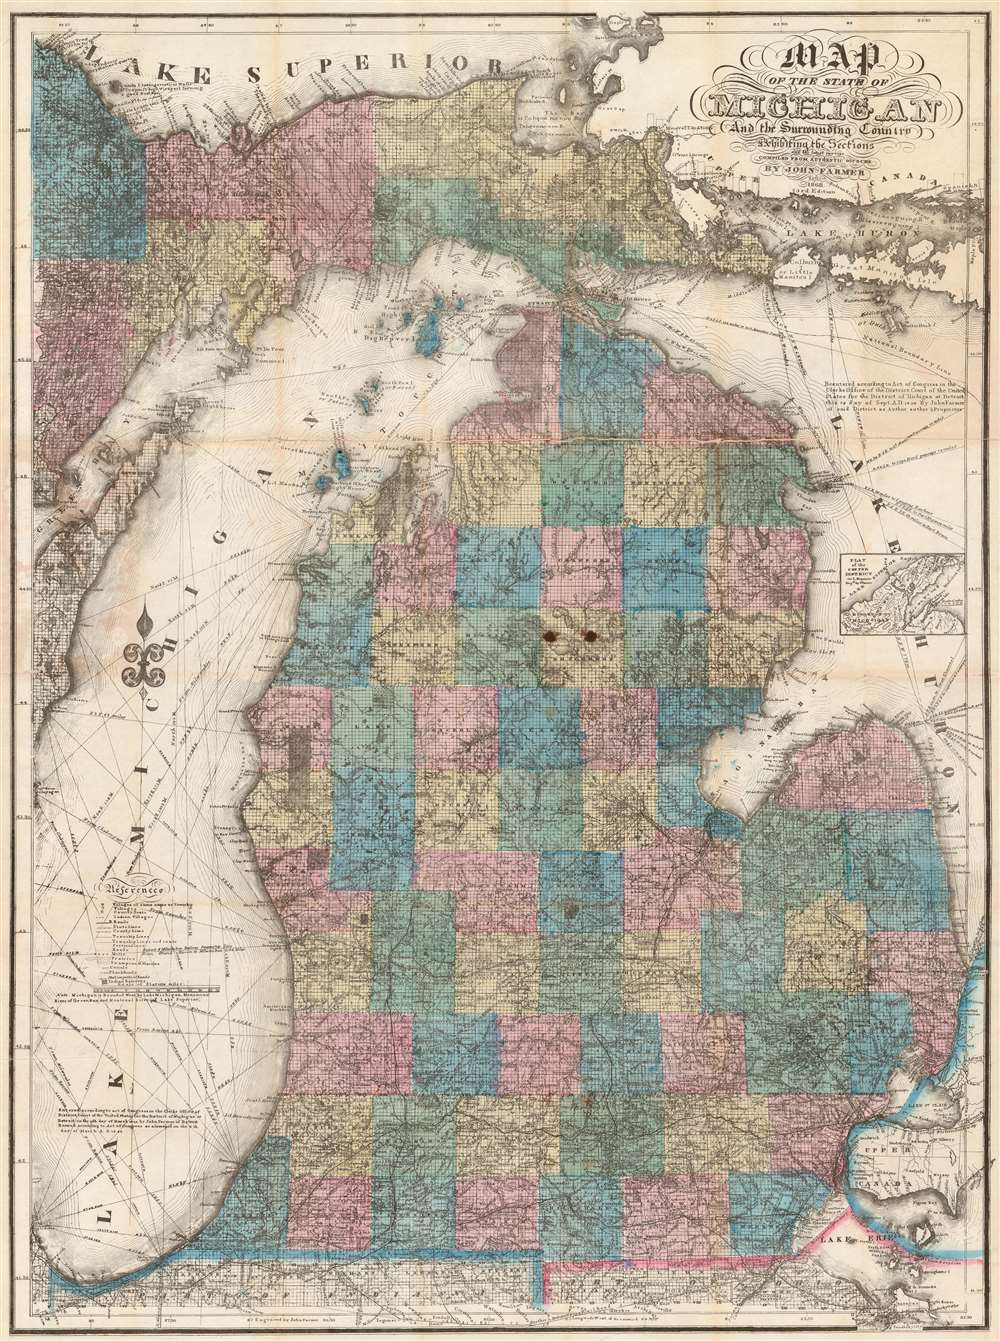 Map of the State of Michigan and the Surrounding Country.